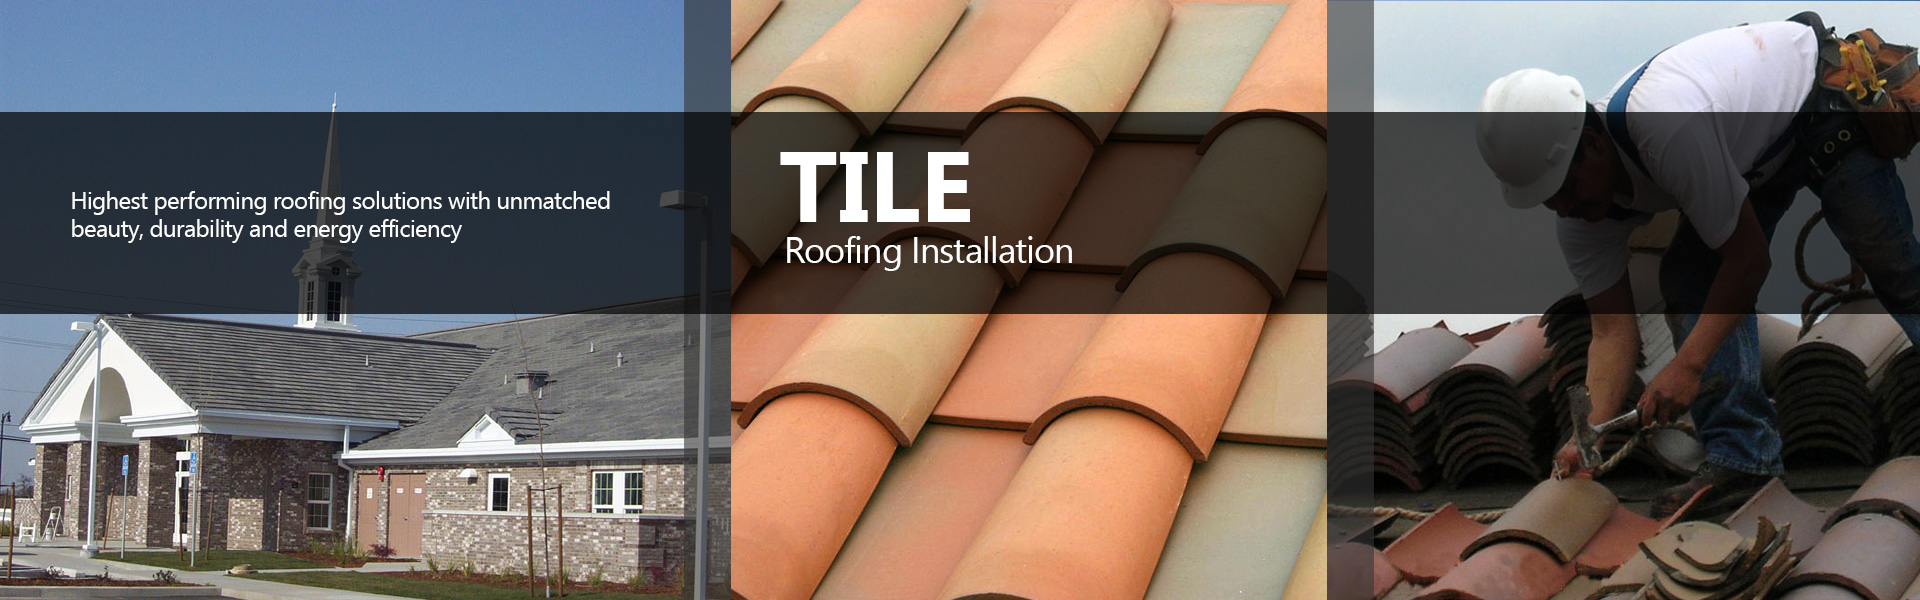 tile-roofing-installation